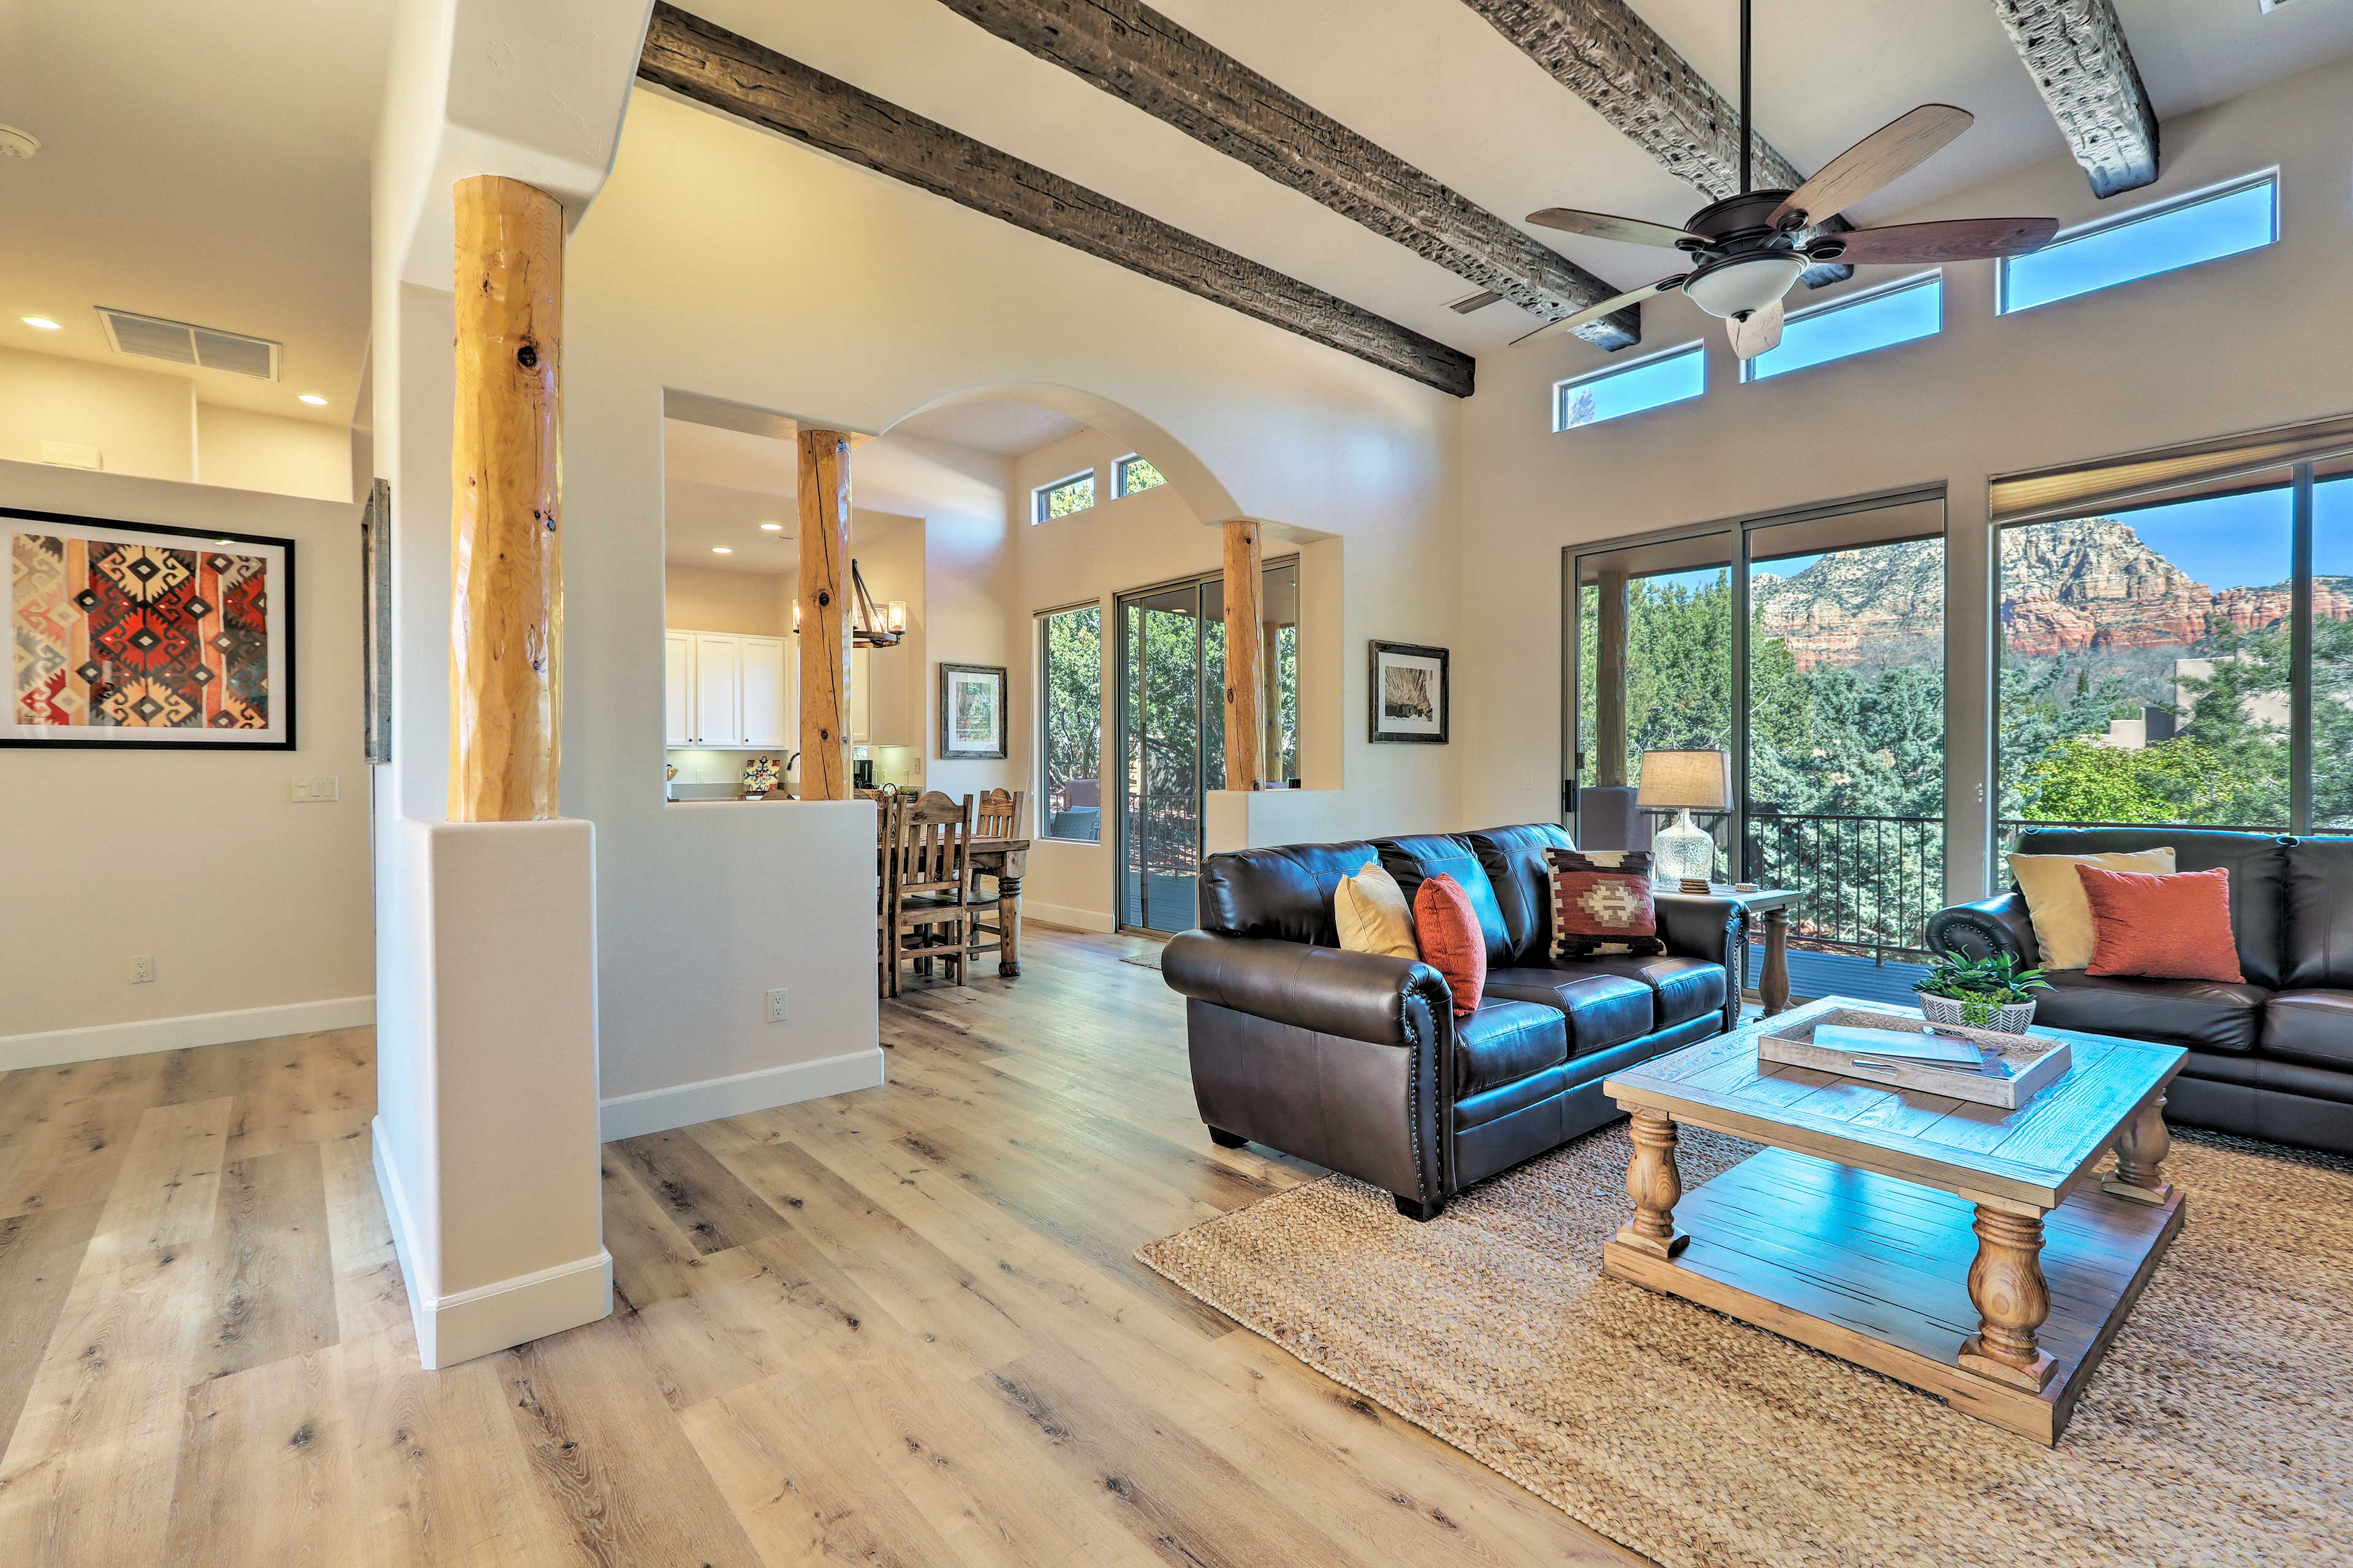 Inside the home, crisp white walls perfectly contrast rustic wood beams.